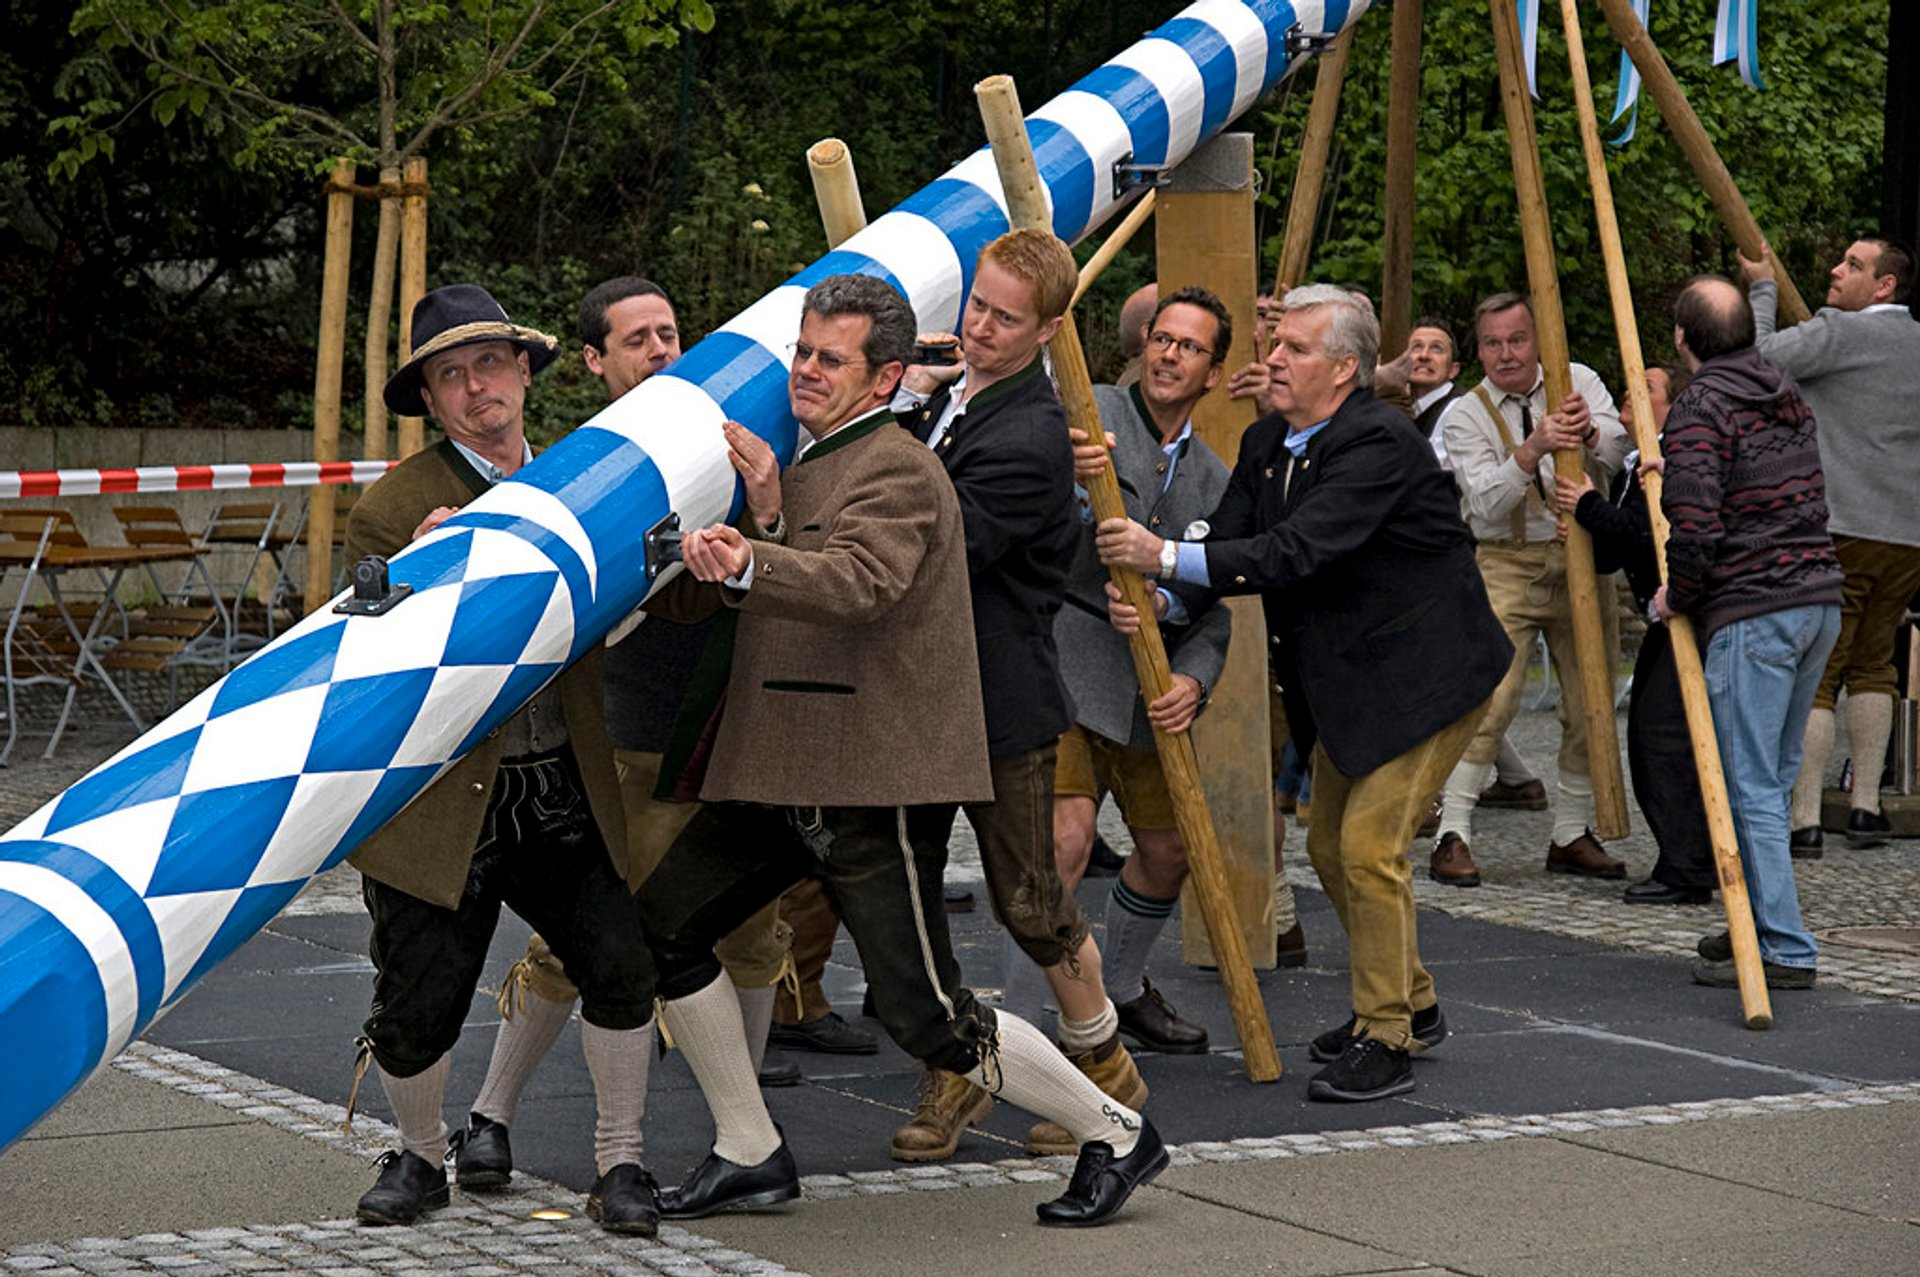 Best time for Maibaumaufstellen (May Day Festival) in Bavaria 2019